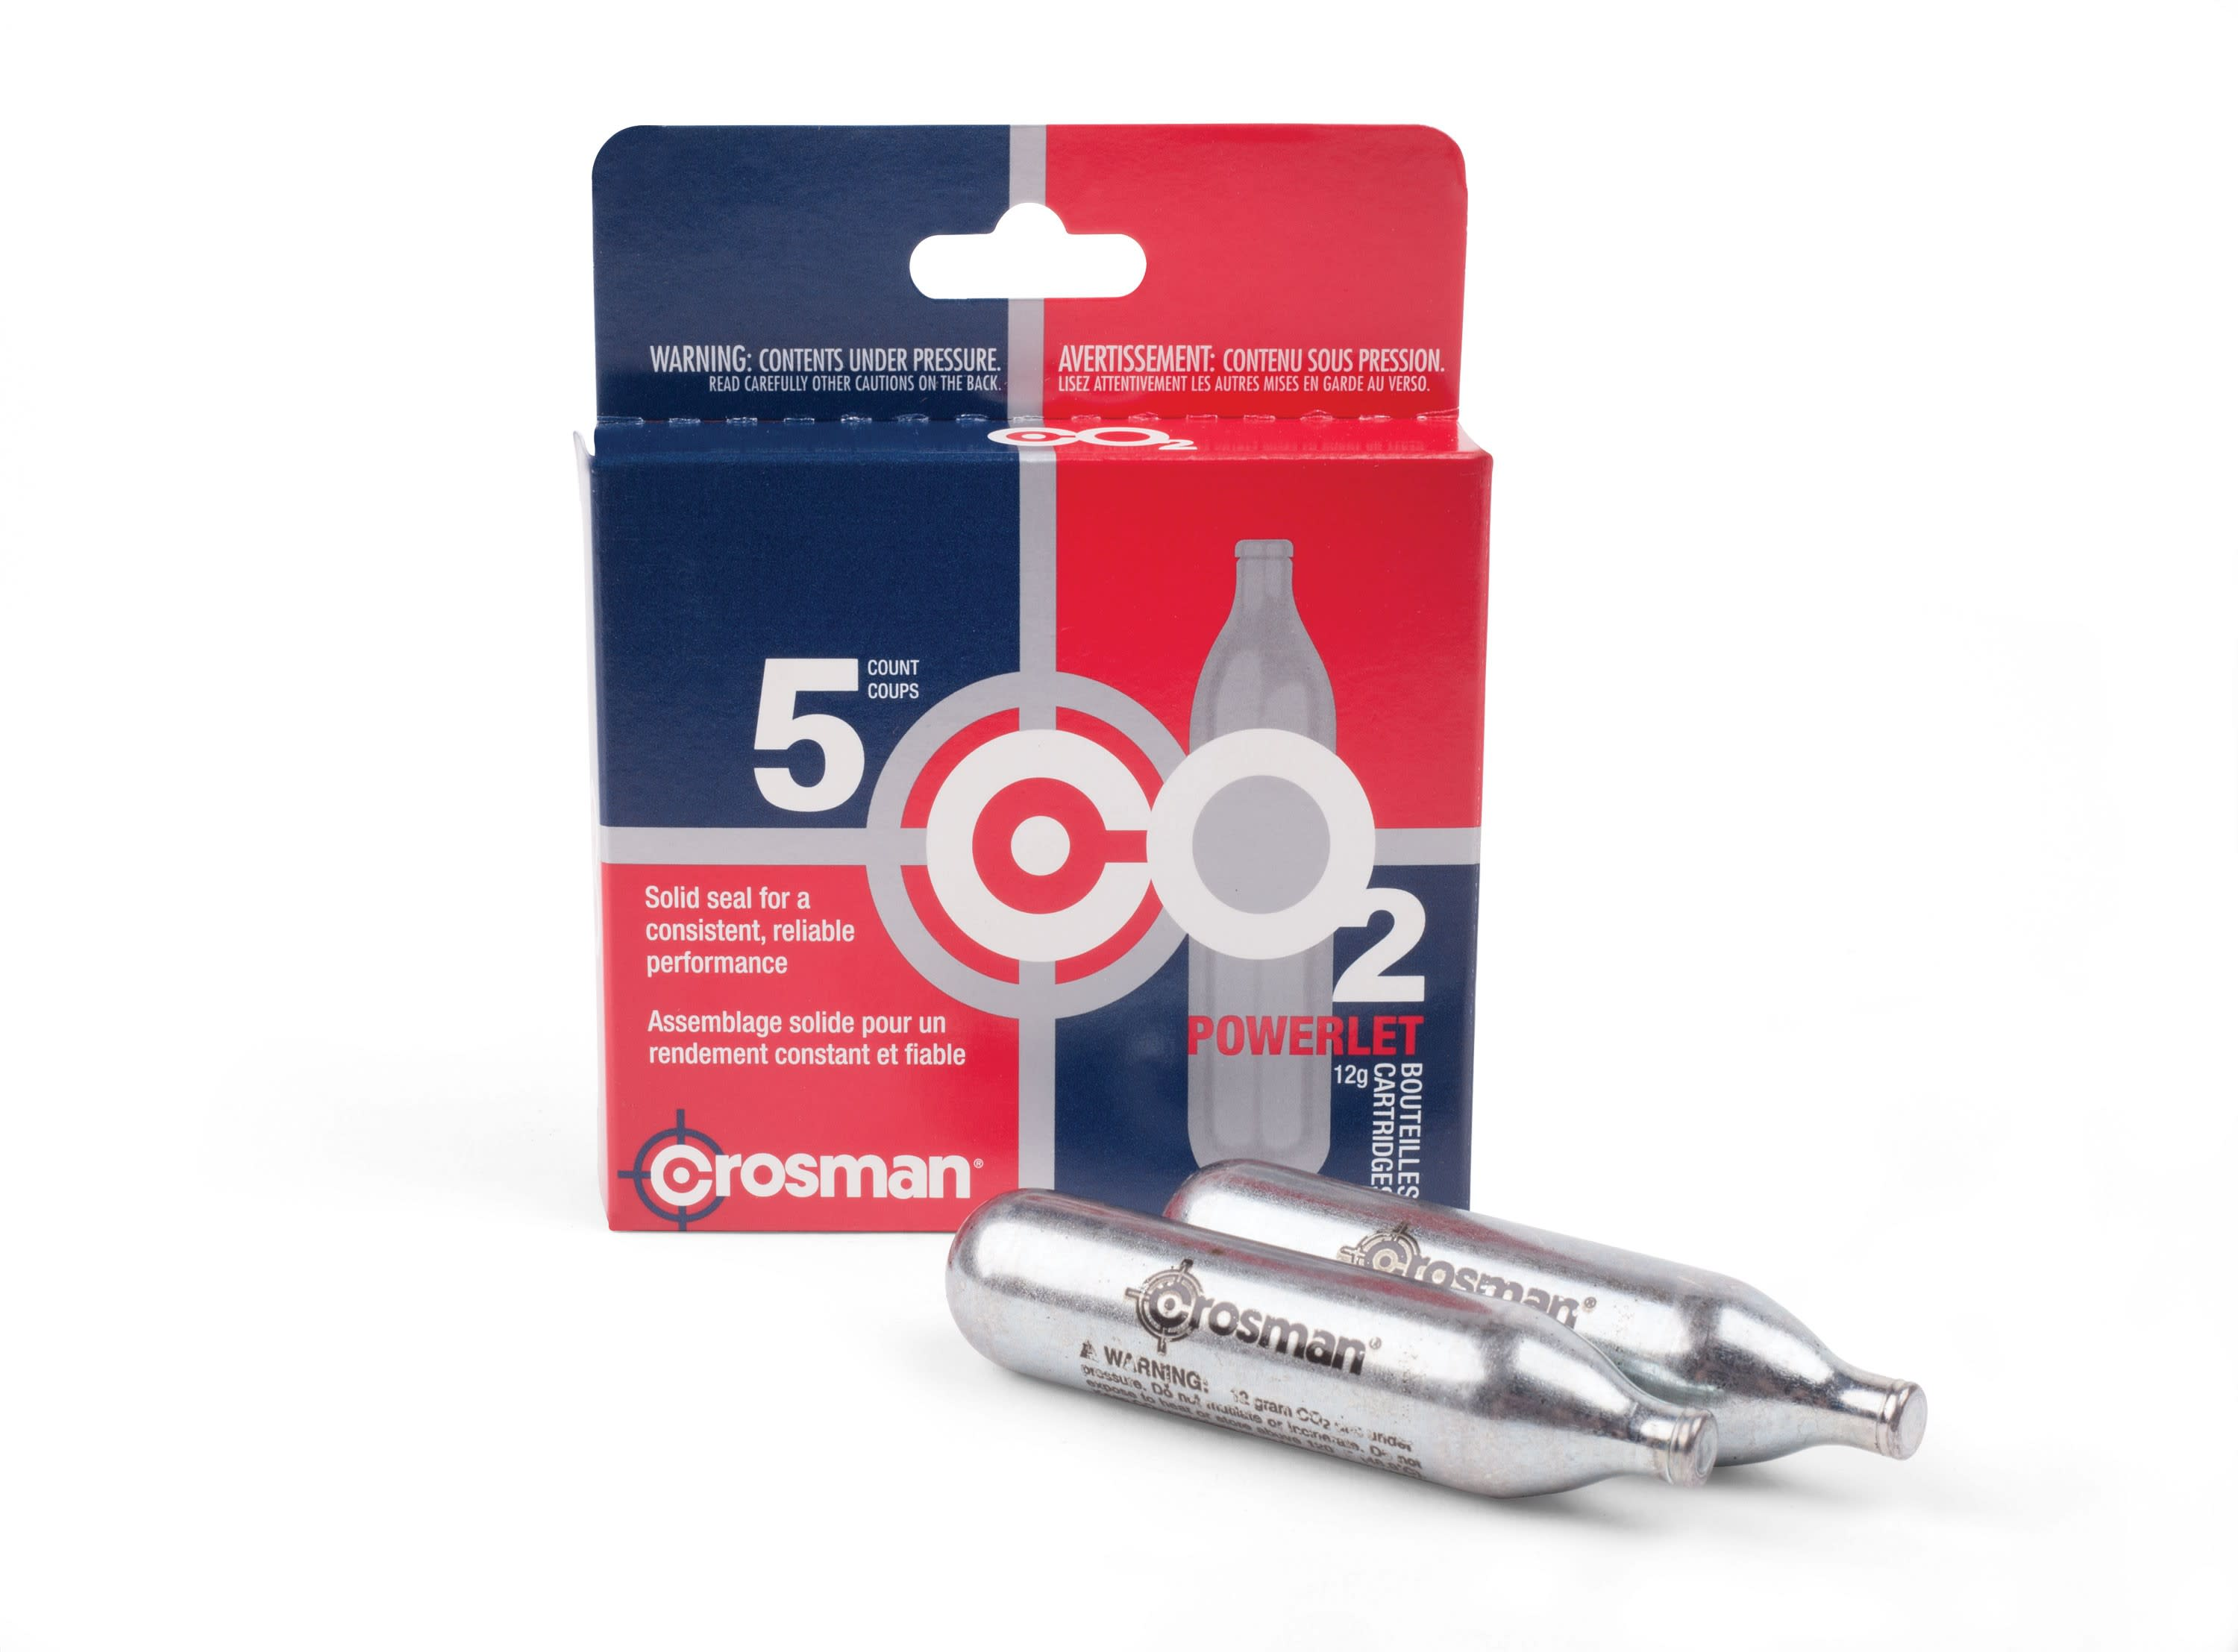 Crosman Powerlet - 12-Gram CO2 Cartridges per 5